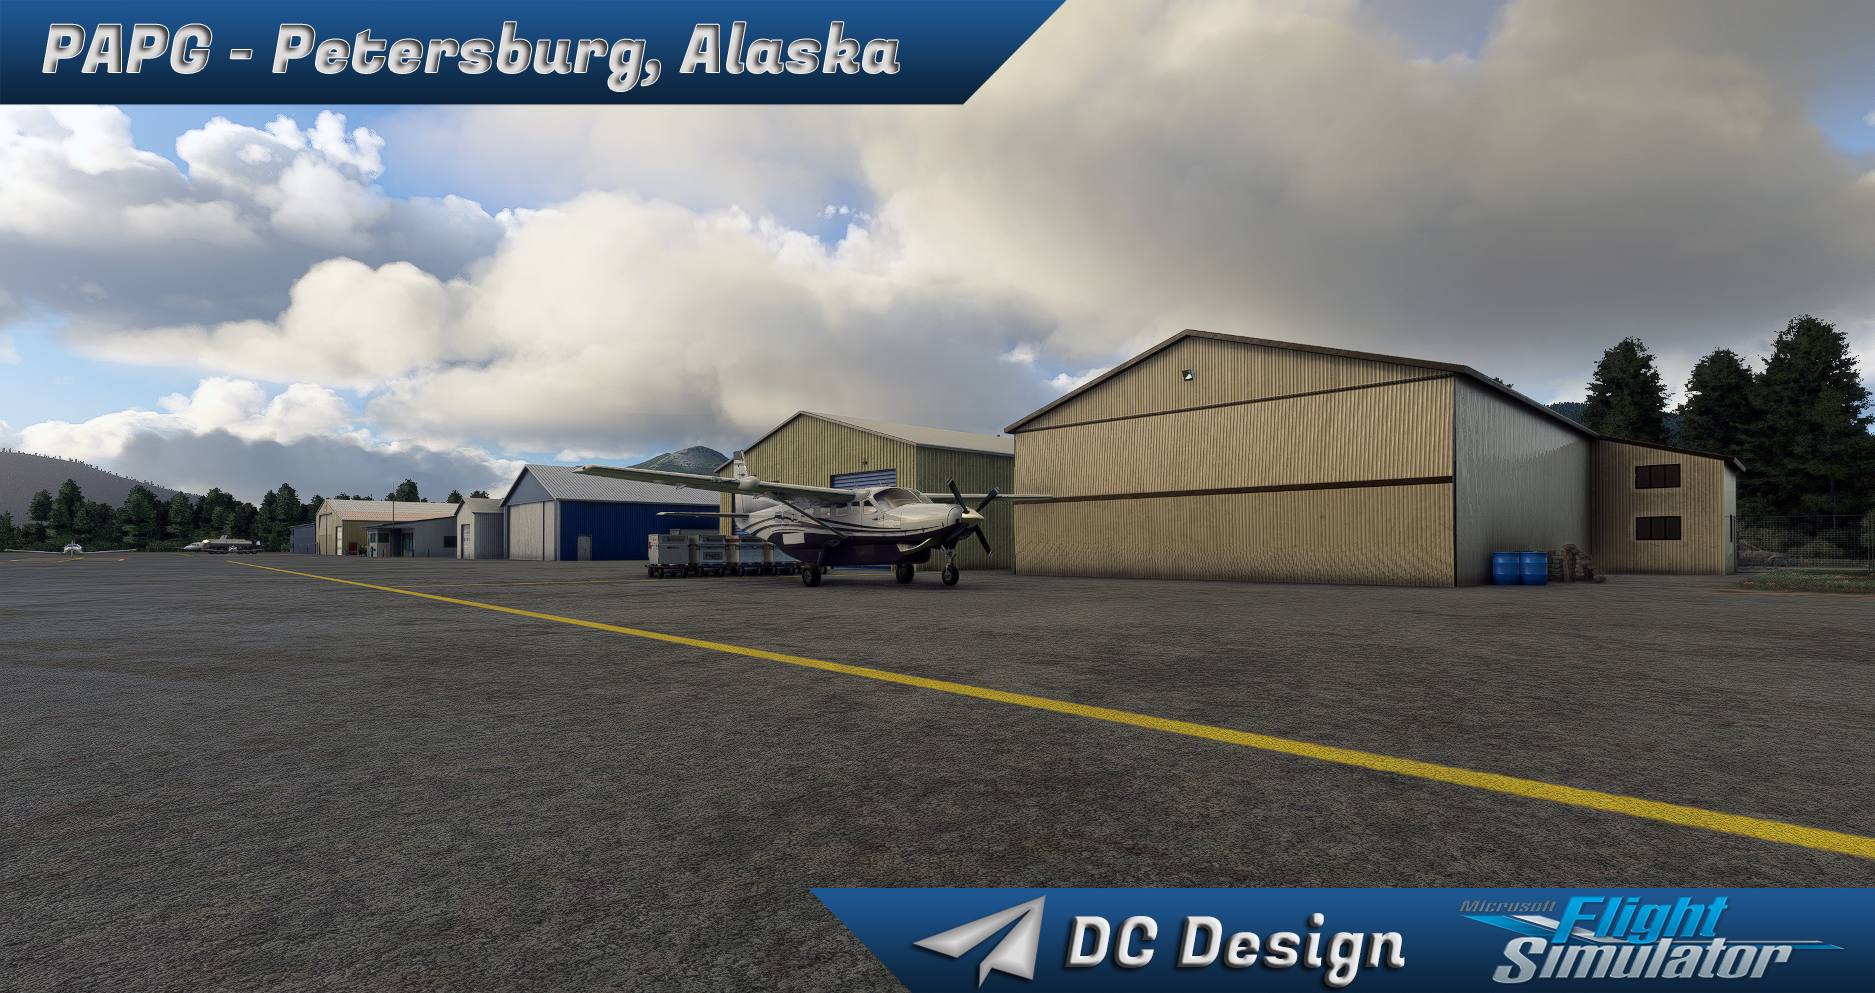 DC SCENERY DESIGN - PAPG - PETERSBURG JAMES A. JOHNSON AIRPORT, ALASKA - MSFS